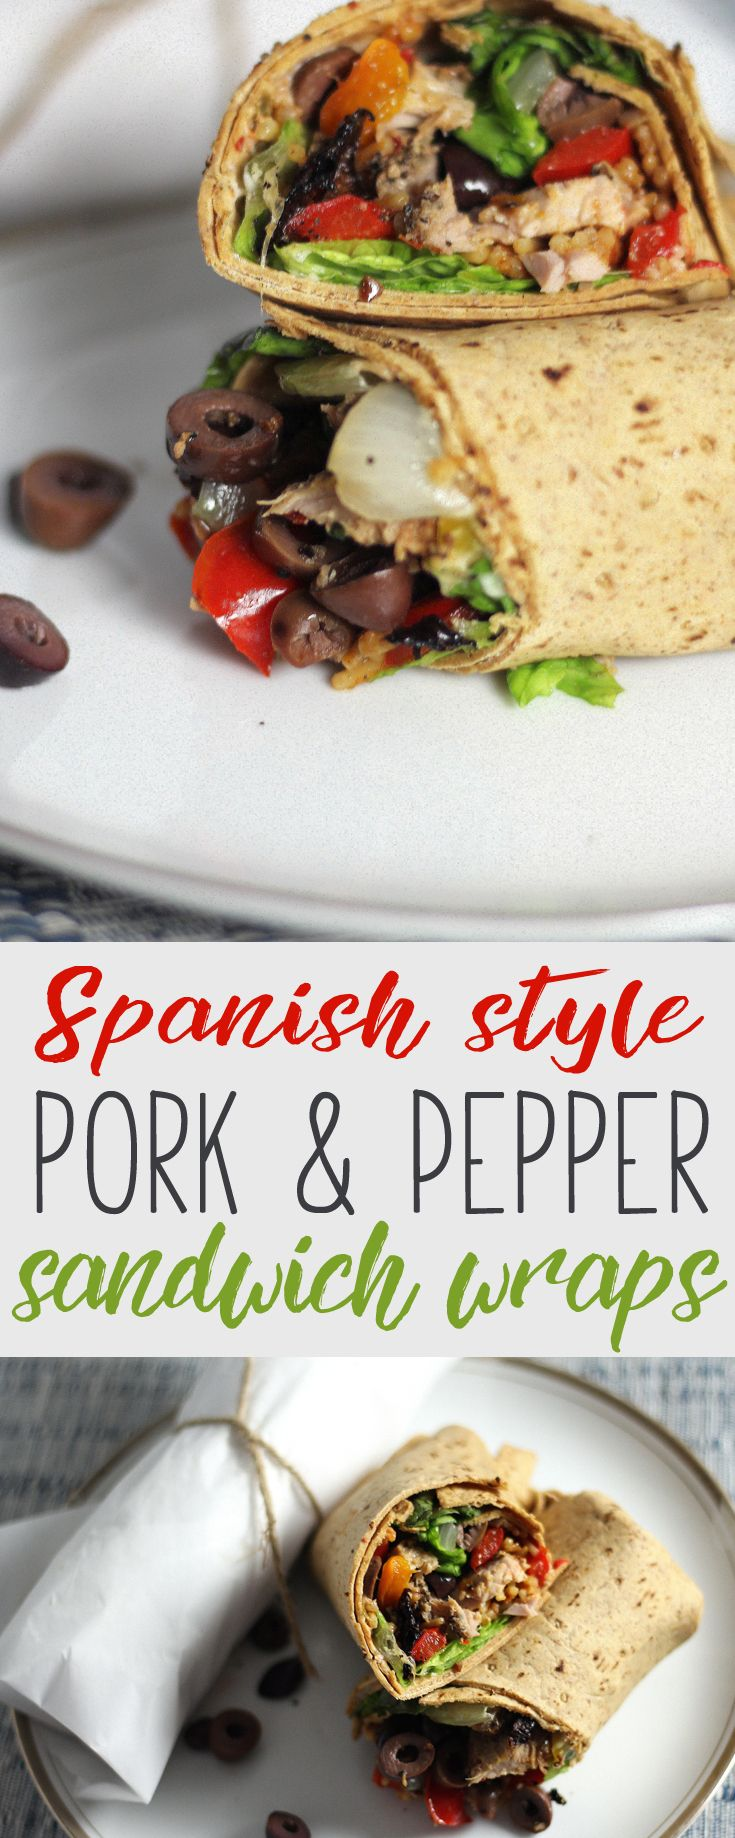 Crazy-good dinner idea. You are not going to believe how easy this recipe for Spanish Style Pork Pepper Sandwich Wraps is. Minimum effort + maximum flavor.     #ad #RealFlavorRealFast  @smithfield @walmart